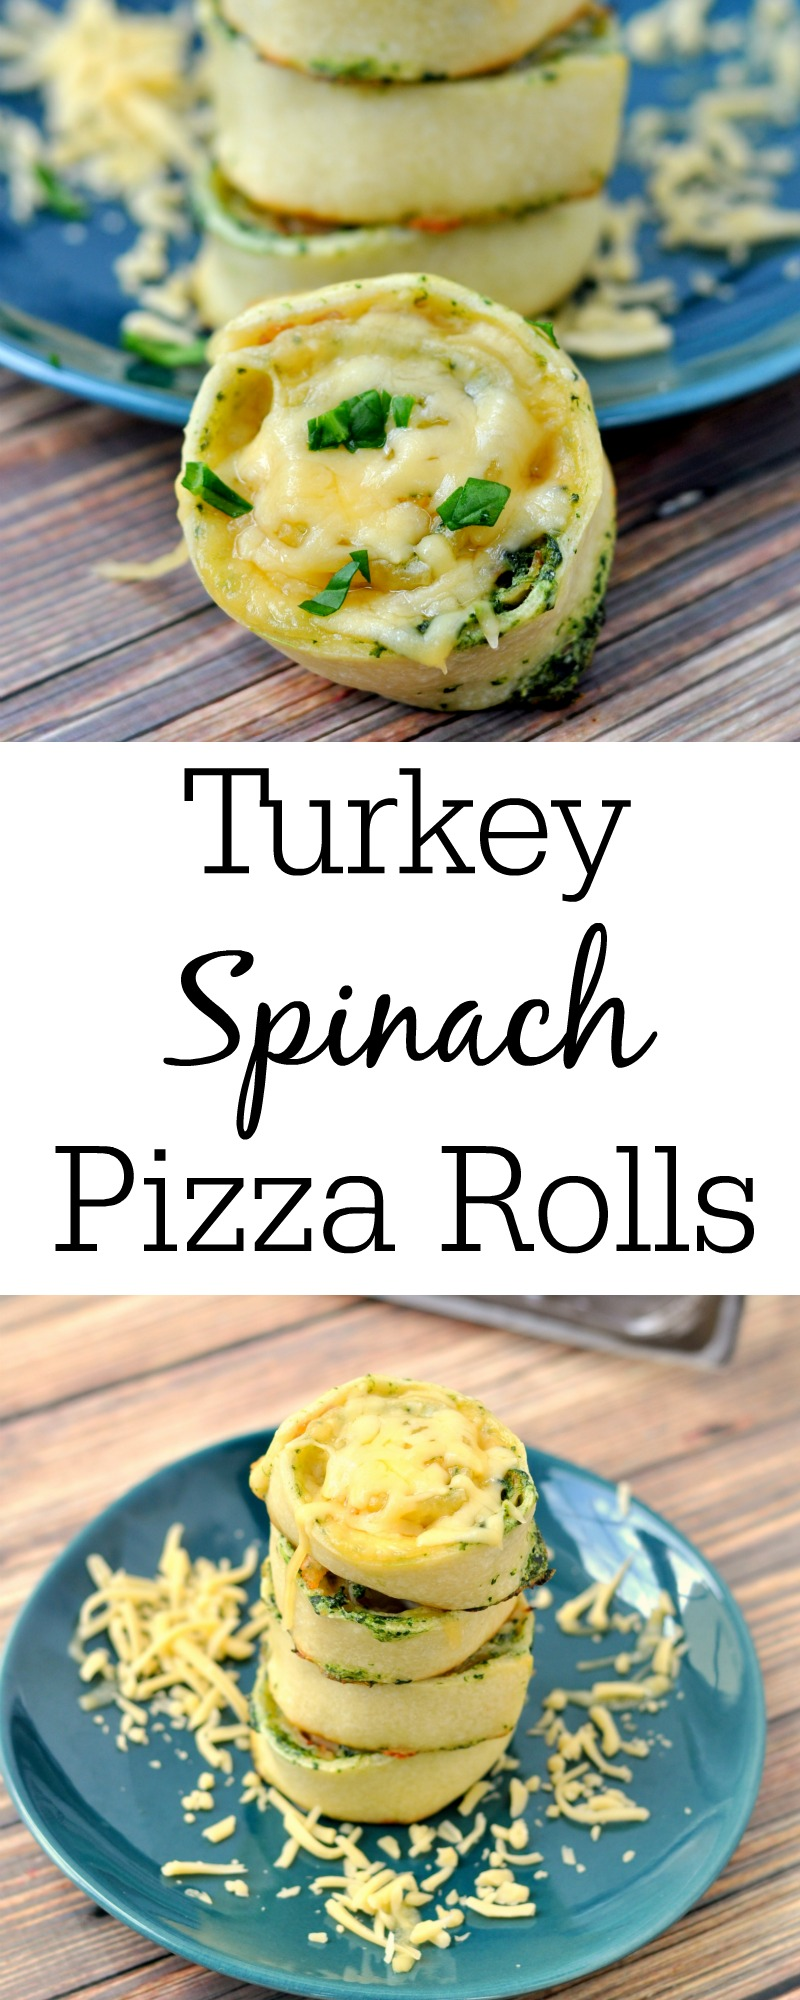 These turkey spinach pizza rolls make a quick and easy dinner or party appetizer.